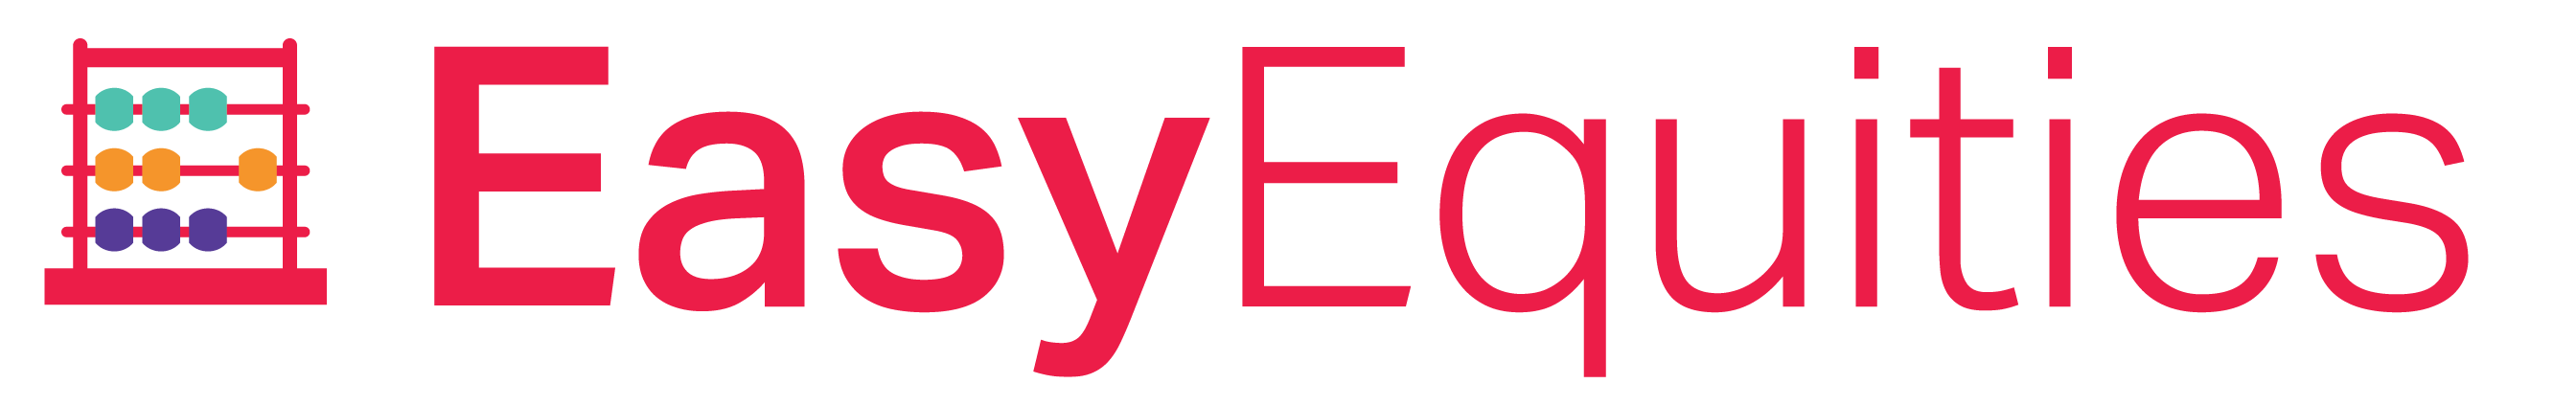 EasyEquities logo